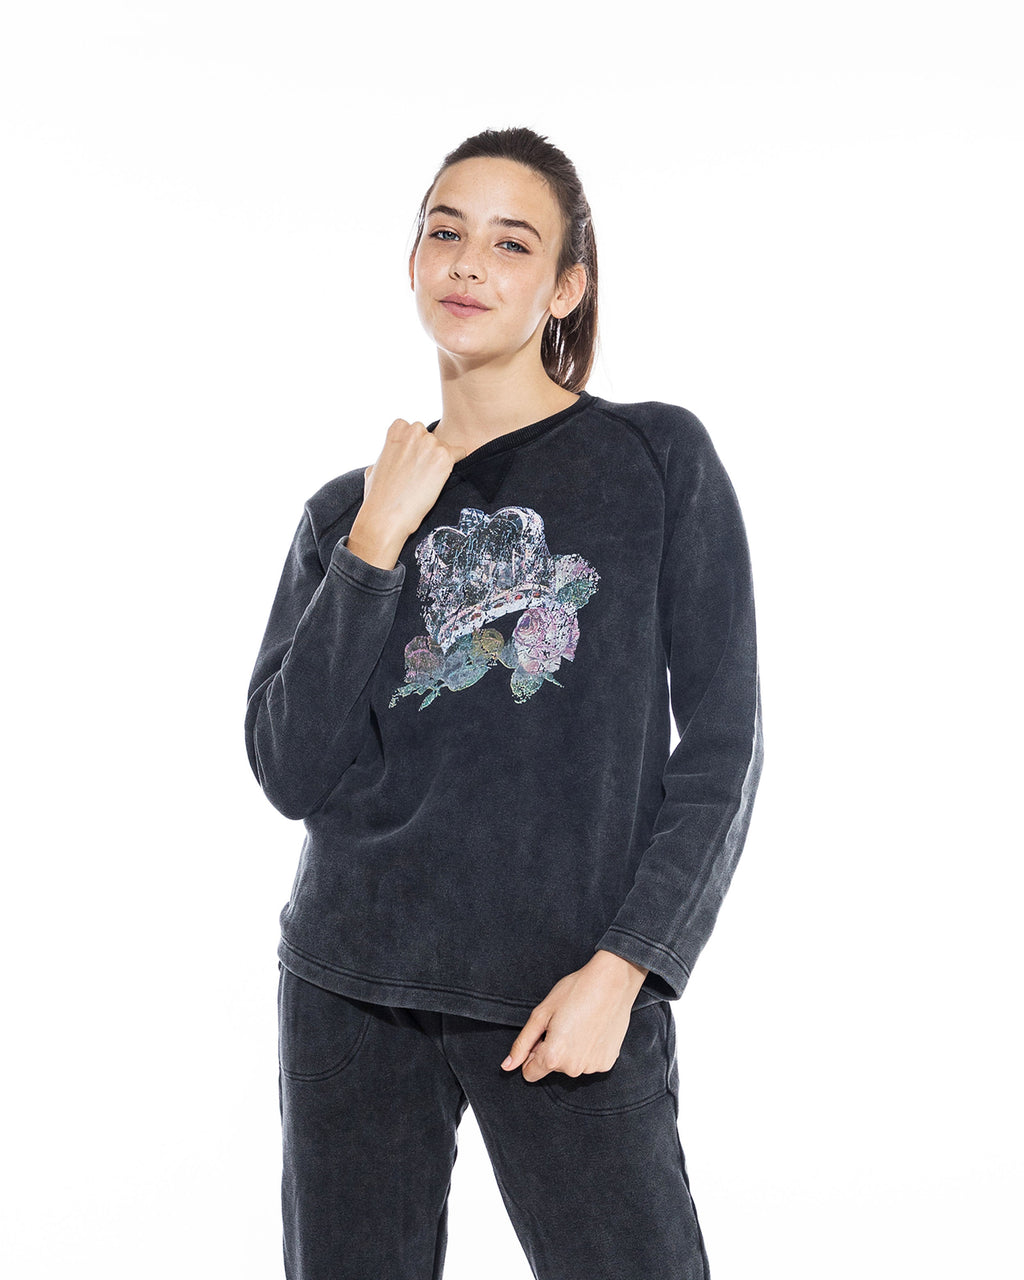 CT18622 - ROCK & ROYALTY CREW NECK SWEATSHIRT - tops - knitwear - Drawing inspiration from our Fall 2020 runway show, this 100% cotton piece is printed with a faded crown and rose graphic. Designed in a classic crew neck silhouette. Add 1 line break Stylist tip: Pair back with the matching joggers for a matching loungewear set.